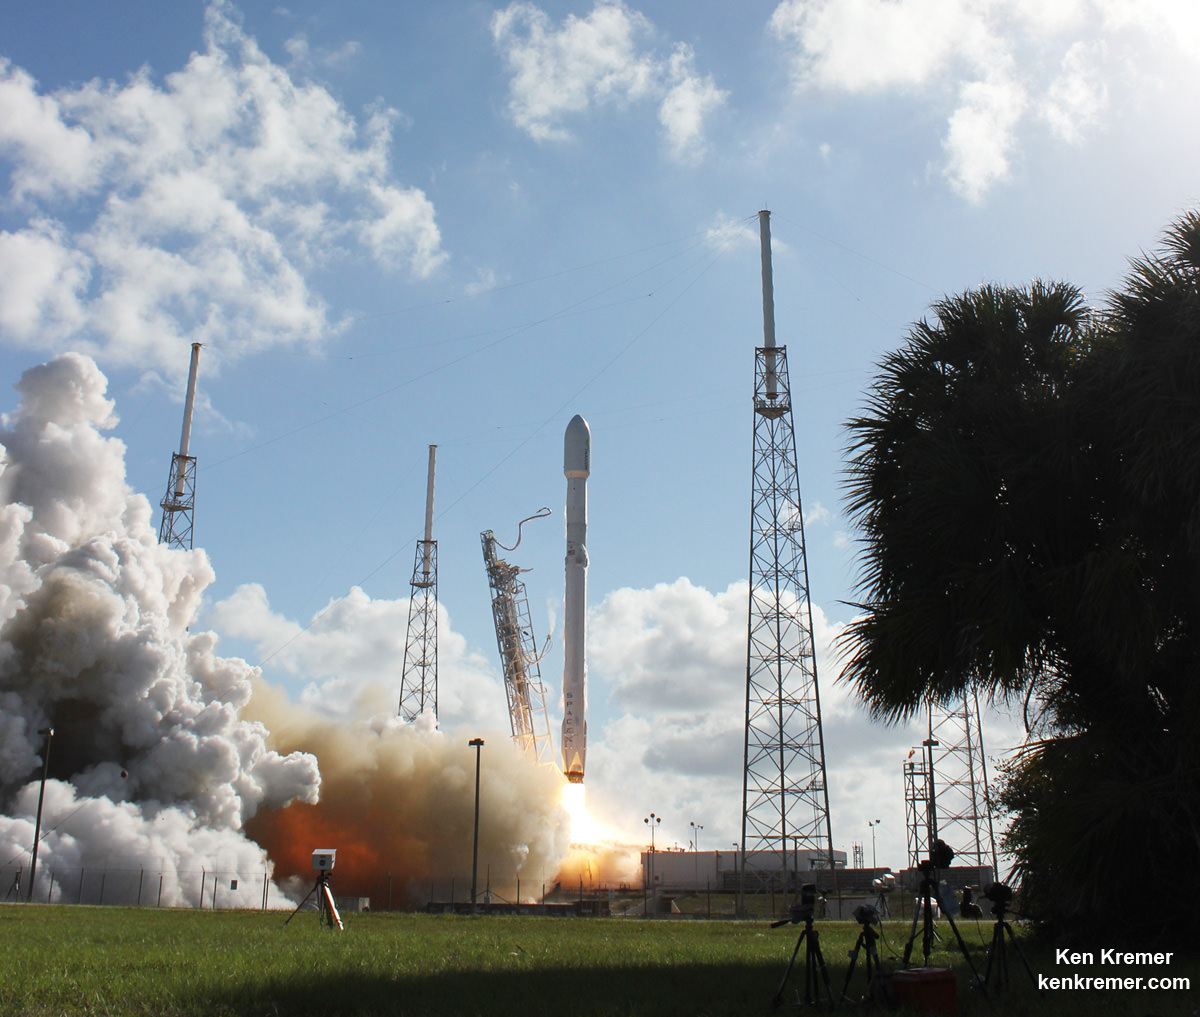 Upgraded SpaceX Falcon 9 blasts off with Thaicom-8 communications satellite on May 27, 2016 from Space Launch Complex 40 at Cape Canaveral Air Force Station, FL.  1st stage booster landed safely at sea minutes later.  Credit: Ken Kremer/kenkremer.com